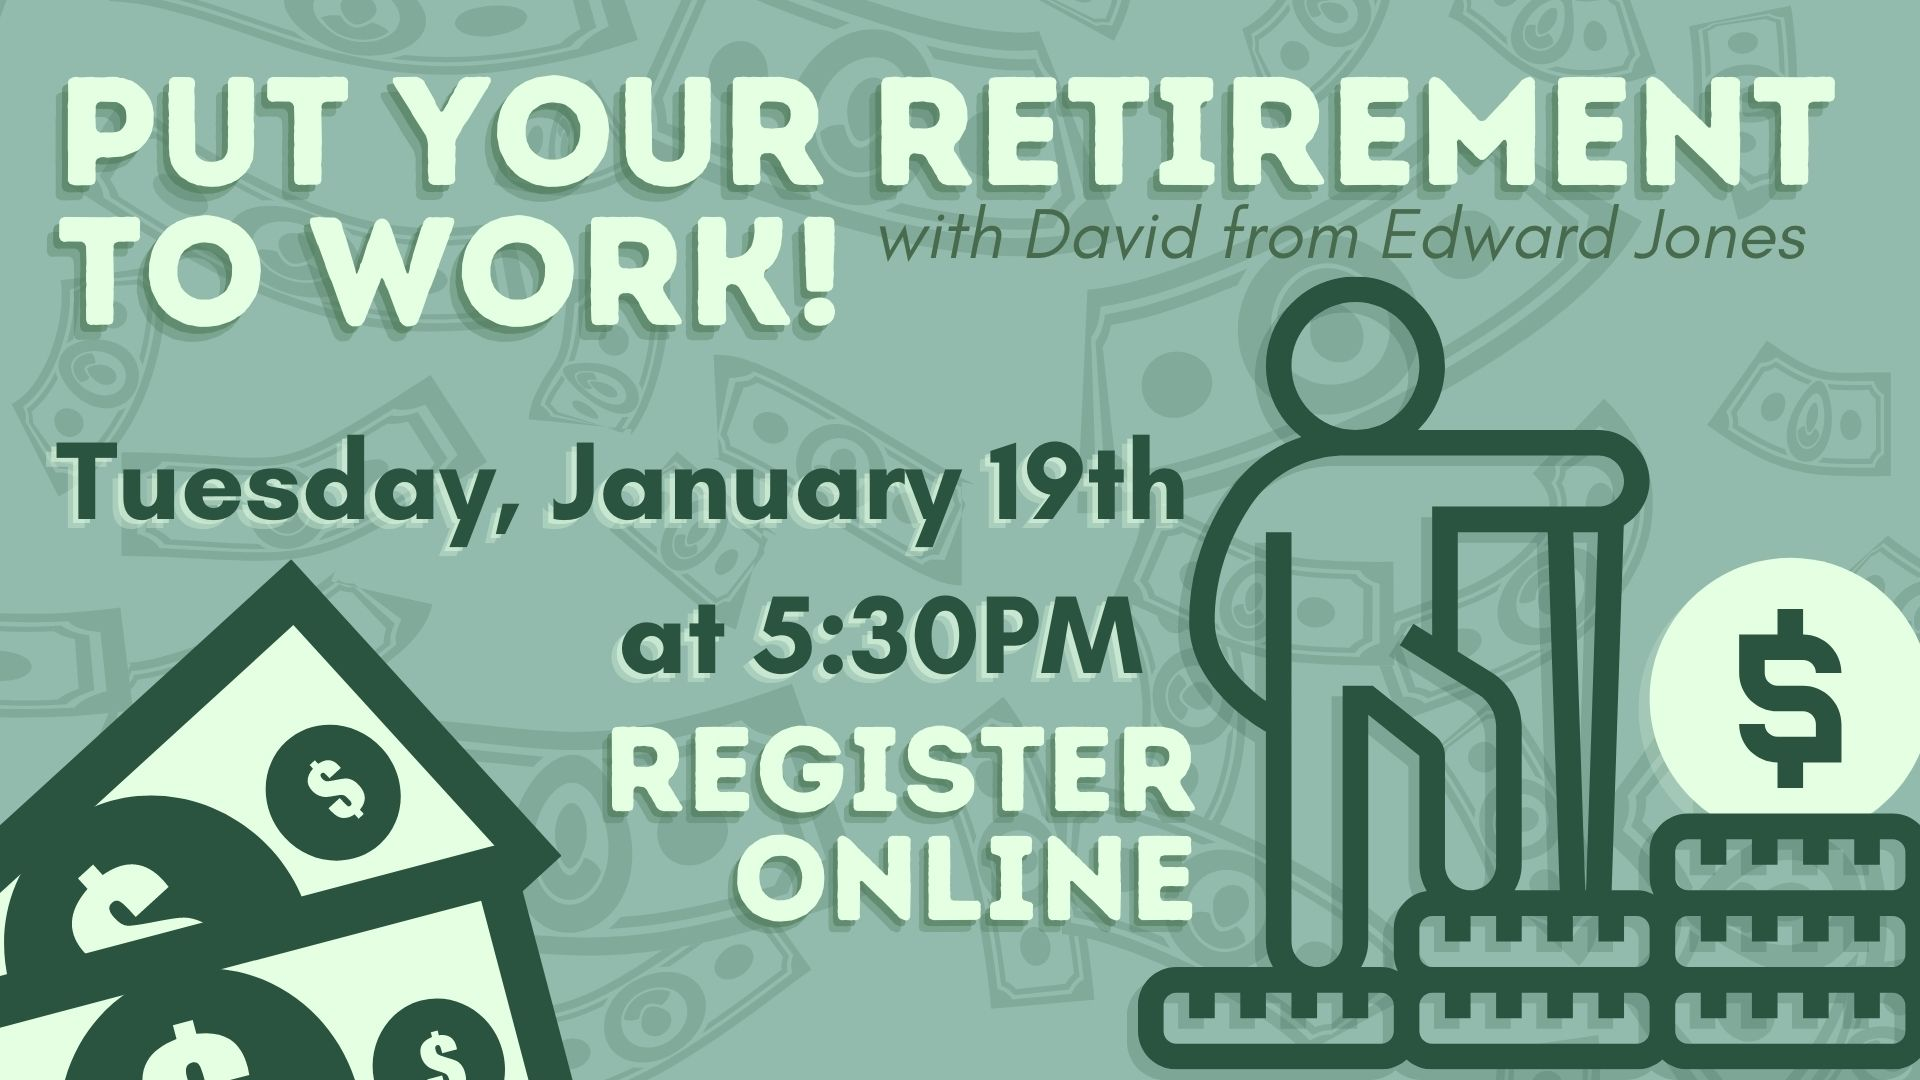 Put Your Retirement to Work